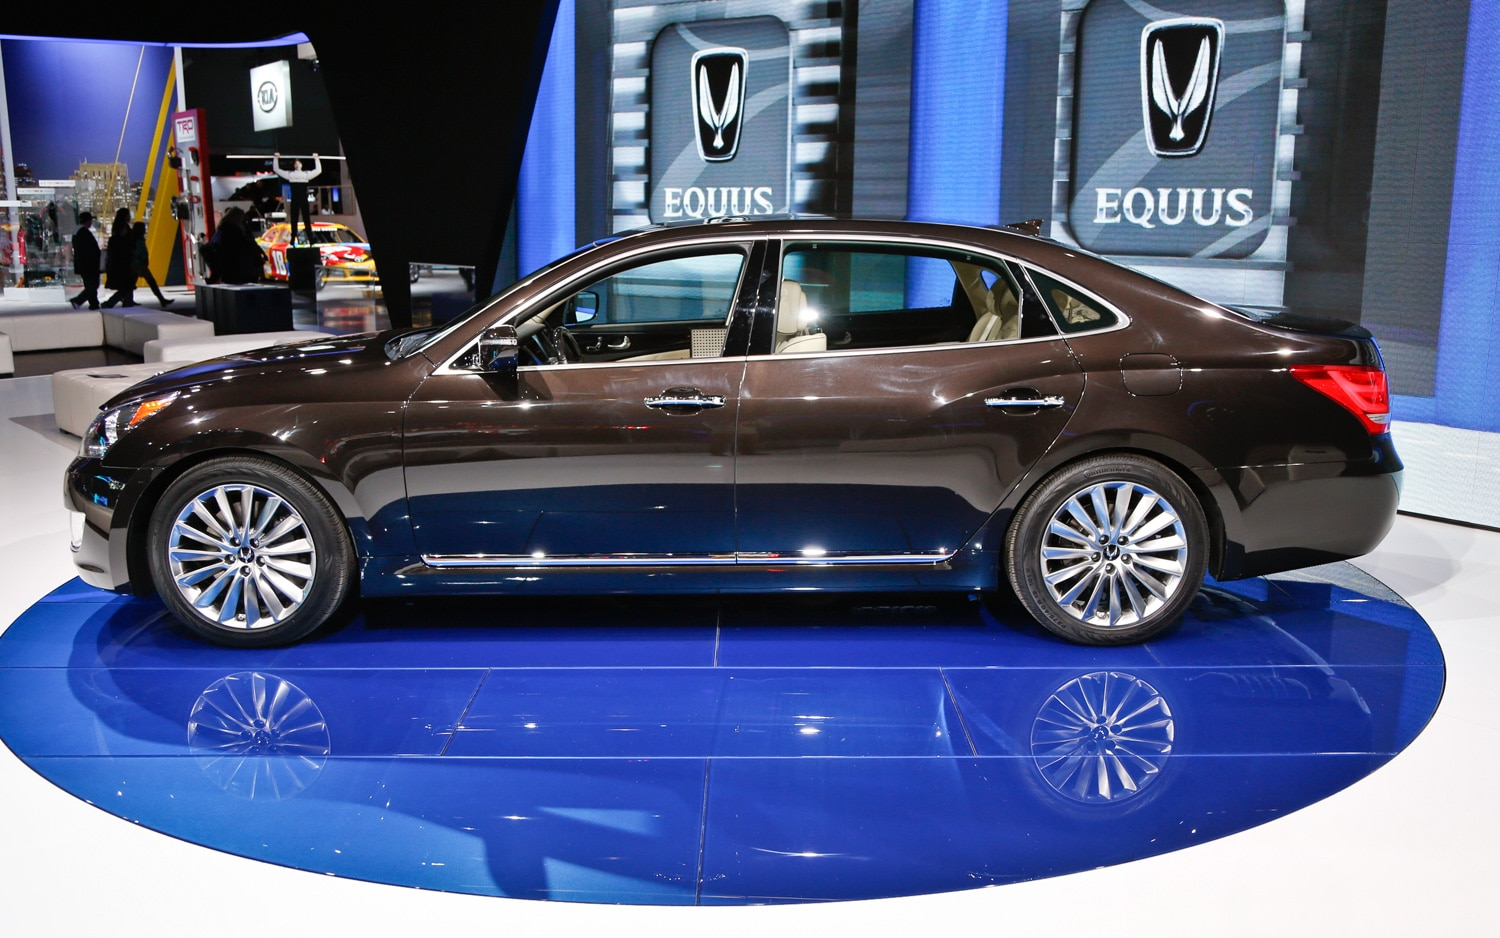 2014 Hyundai Equus Side